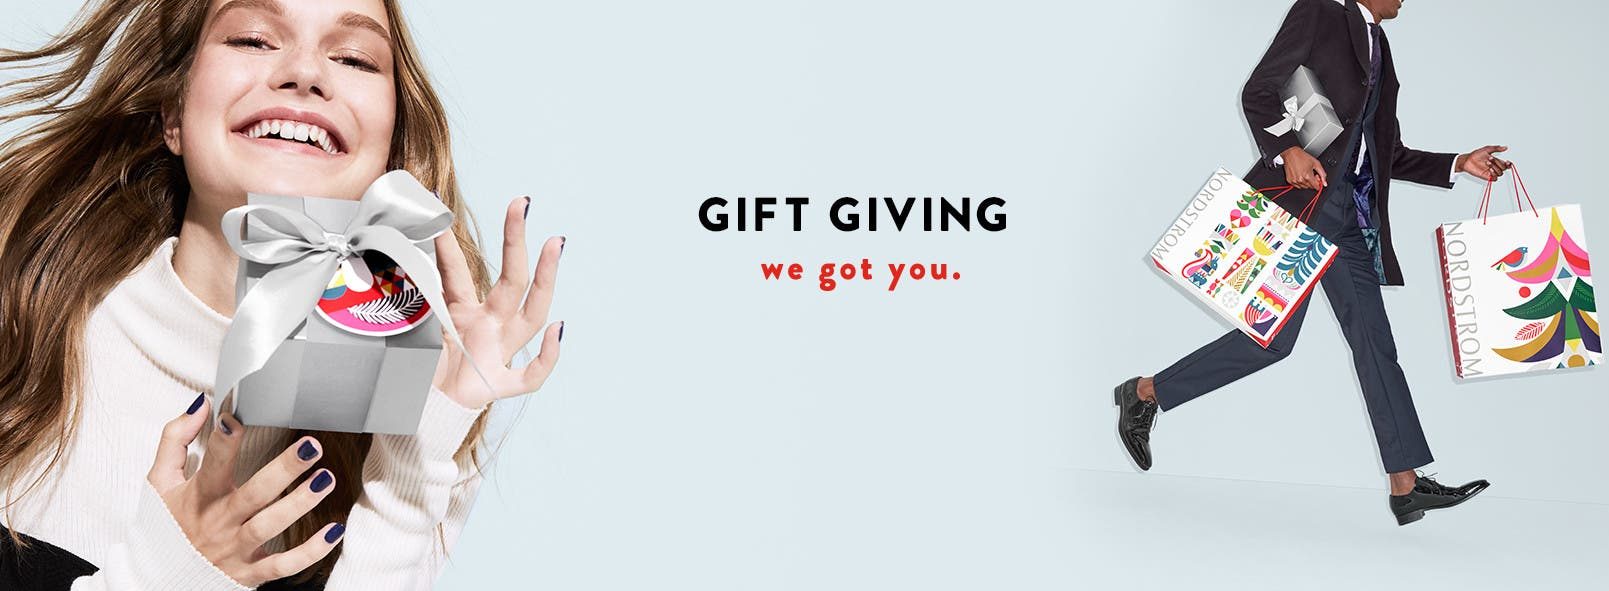 Gift giving: we got you. Christmas and holiday gifts.